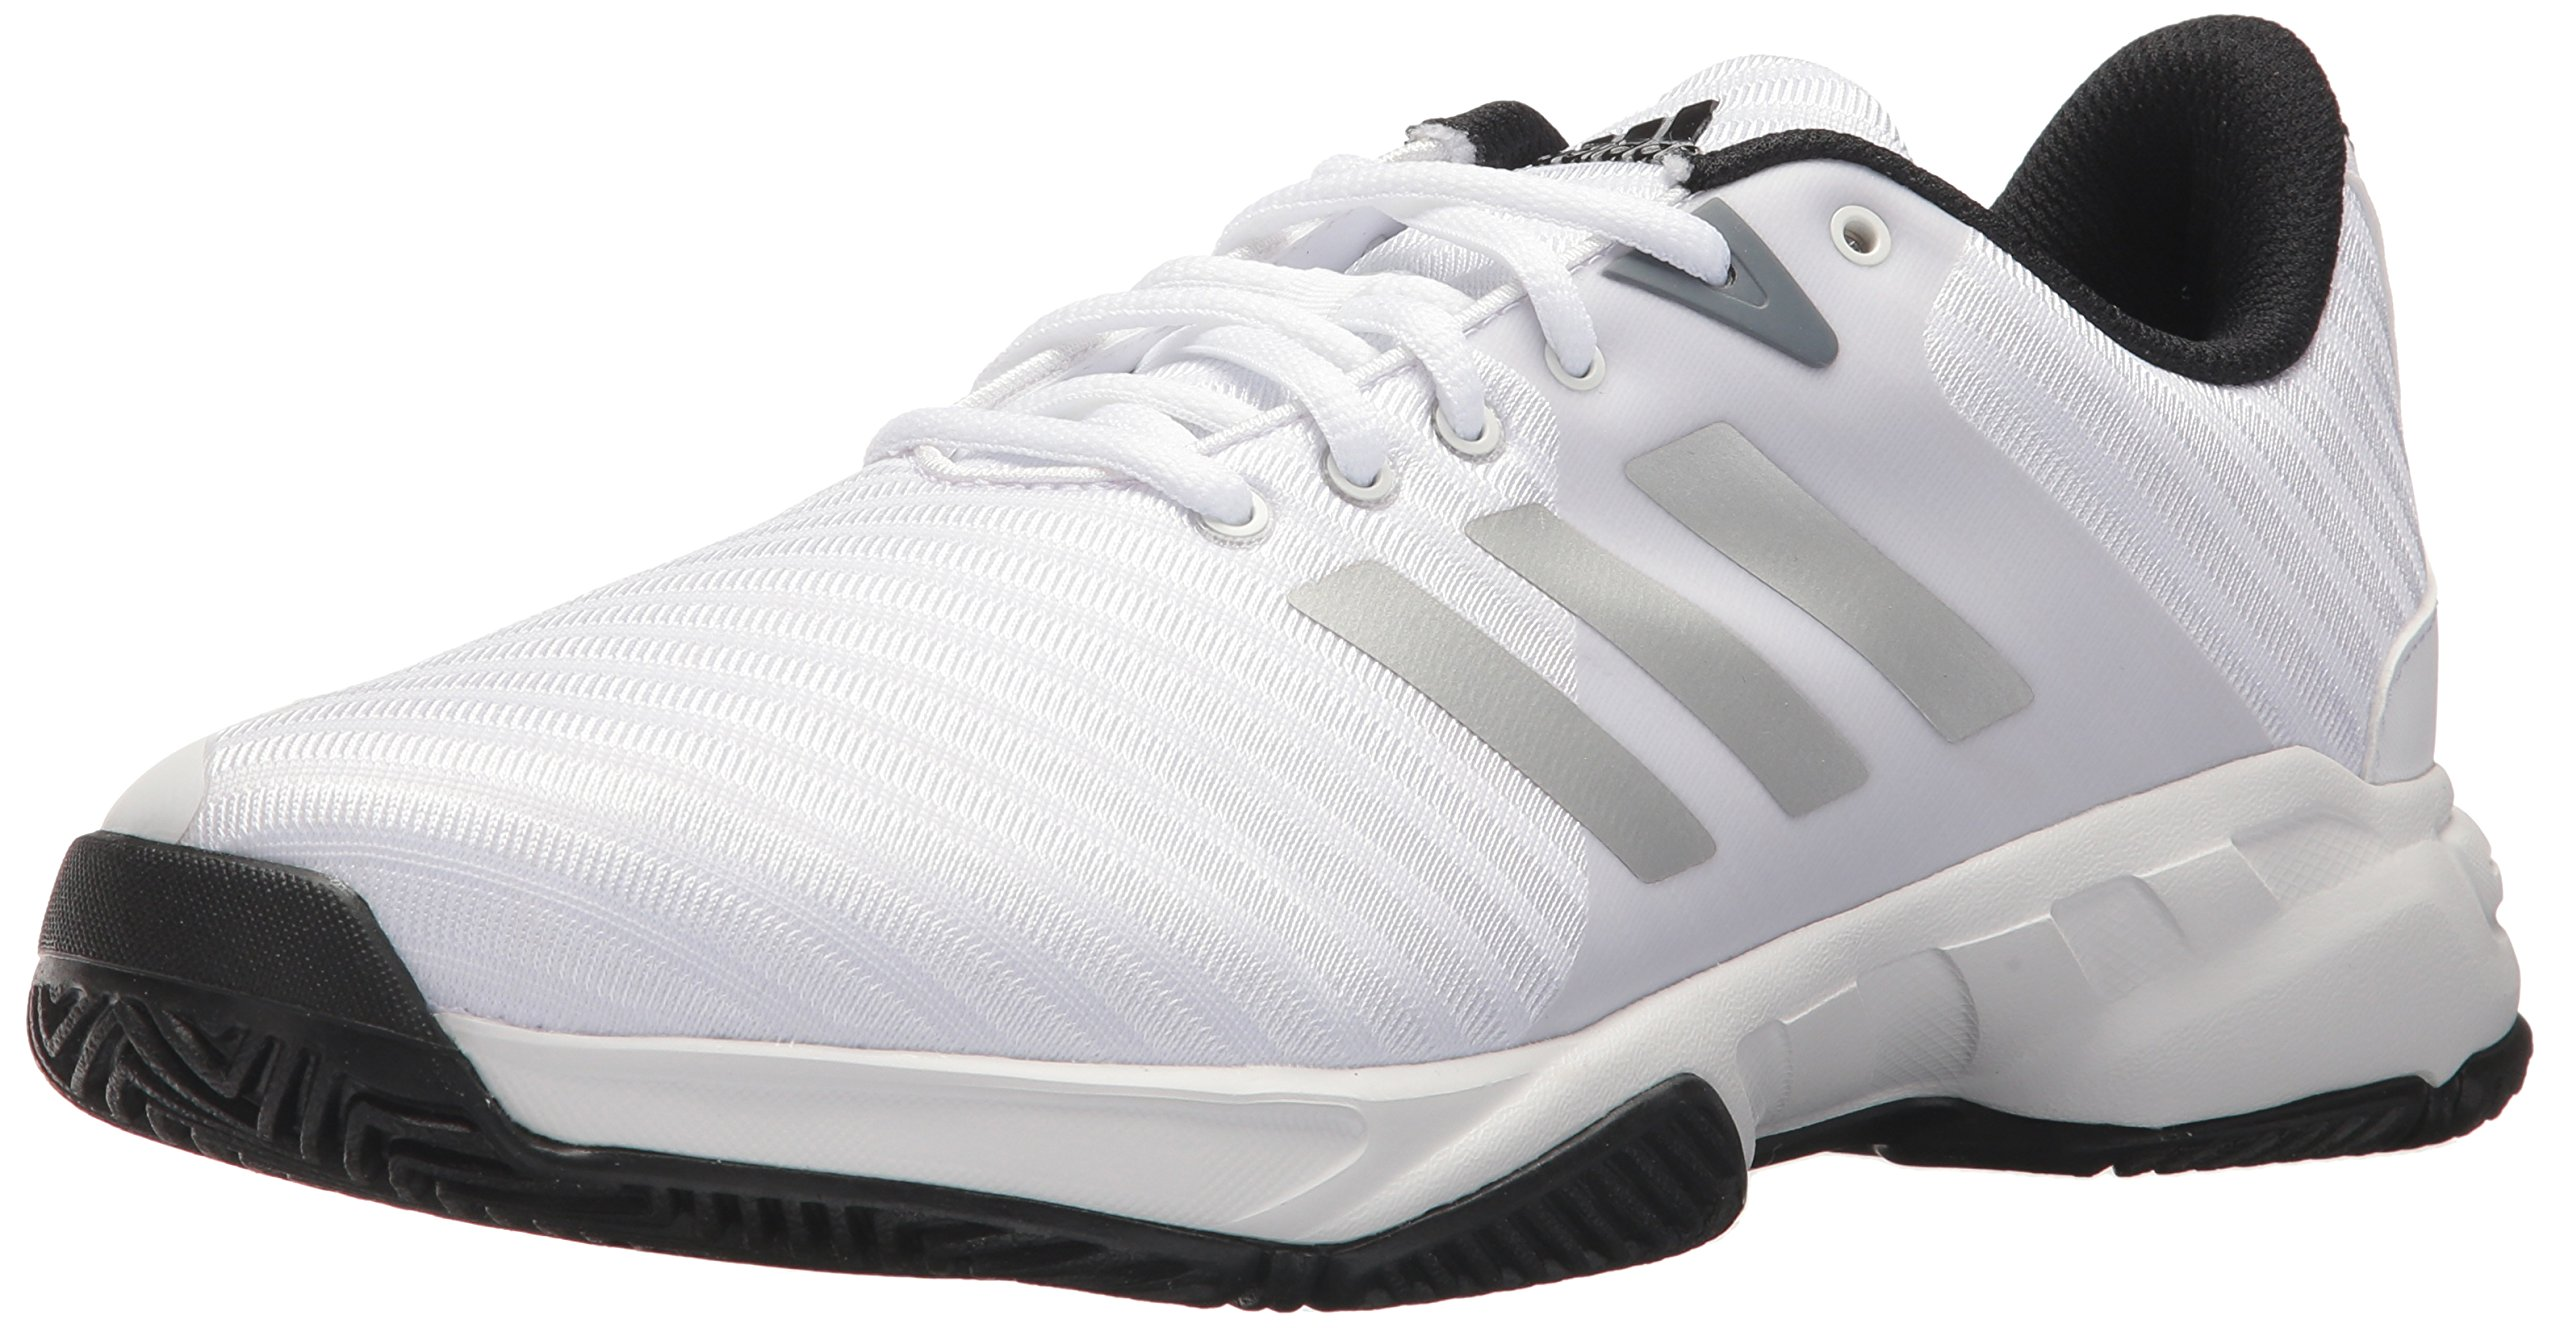 adidas Performance Men's Barricade Court 3 Wide Tennis Shoe, White/Matte Silver/Scarlet, 10.5 M US by adidas